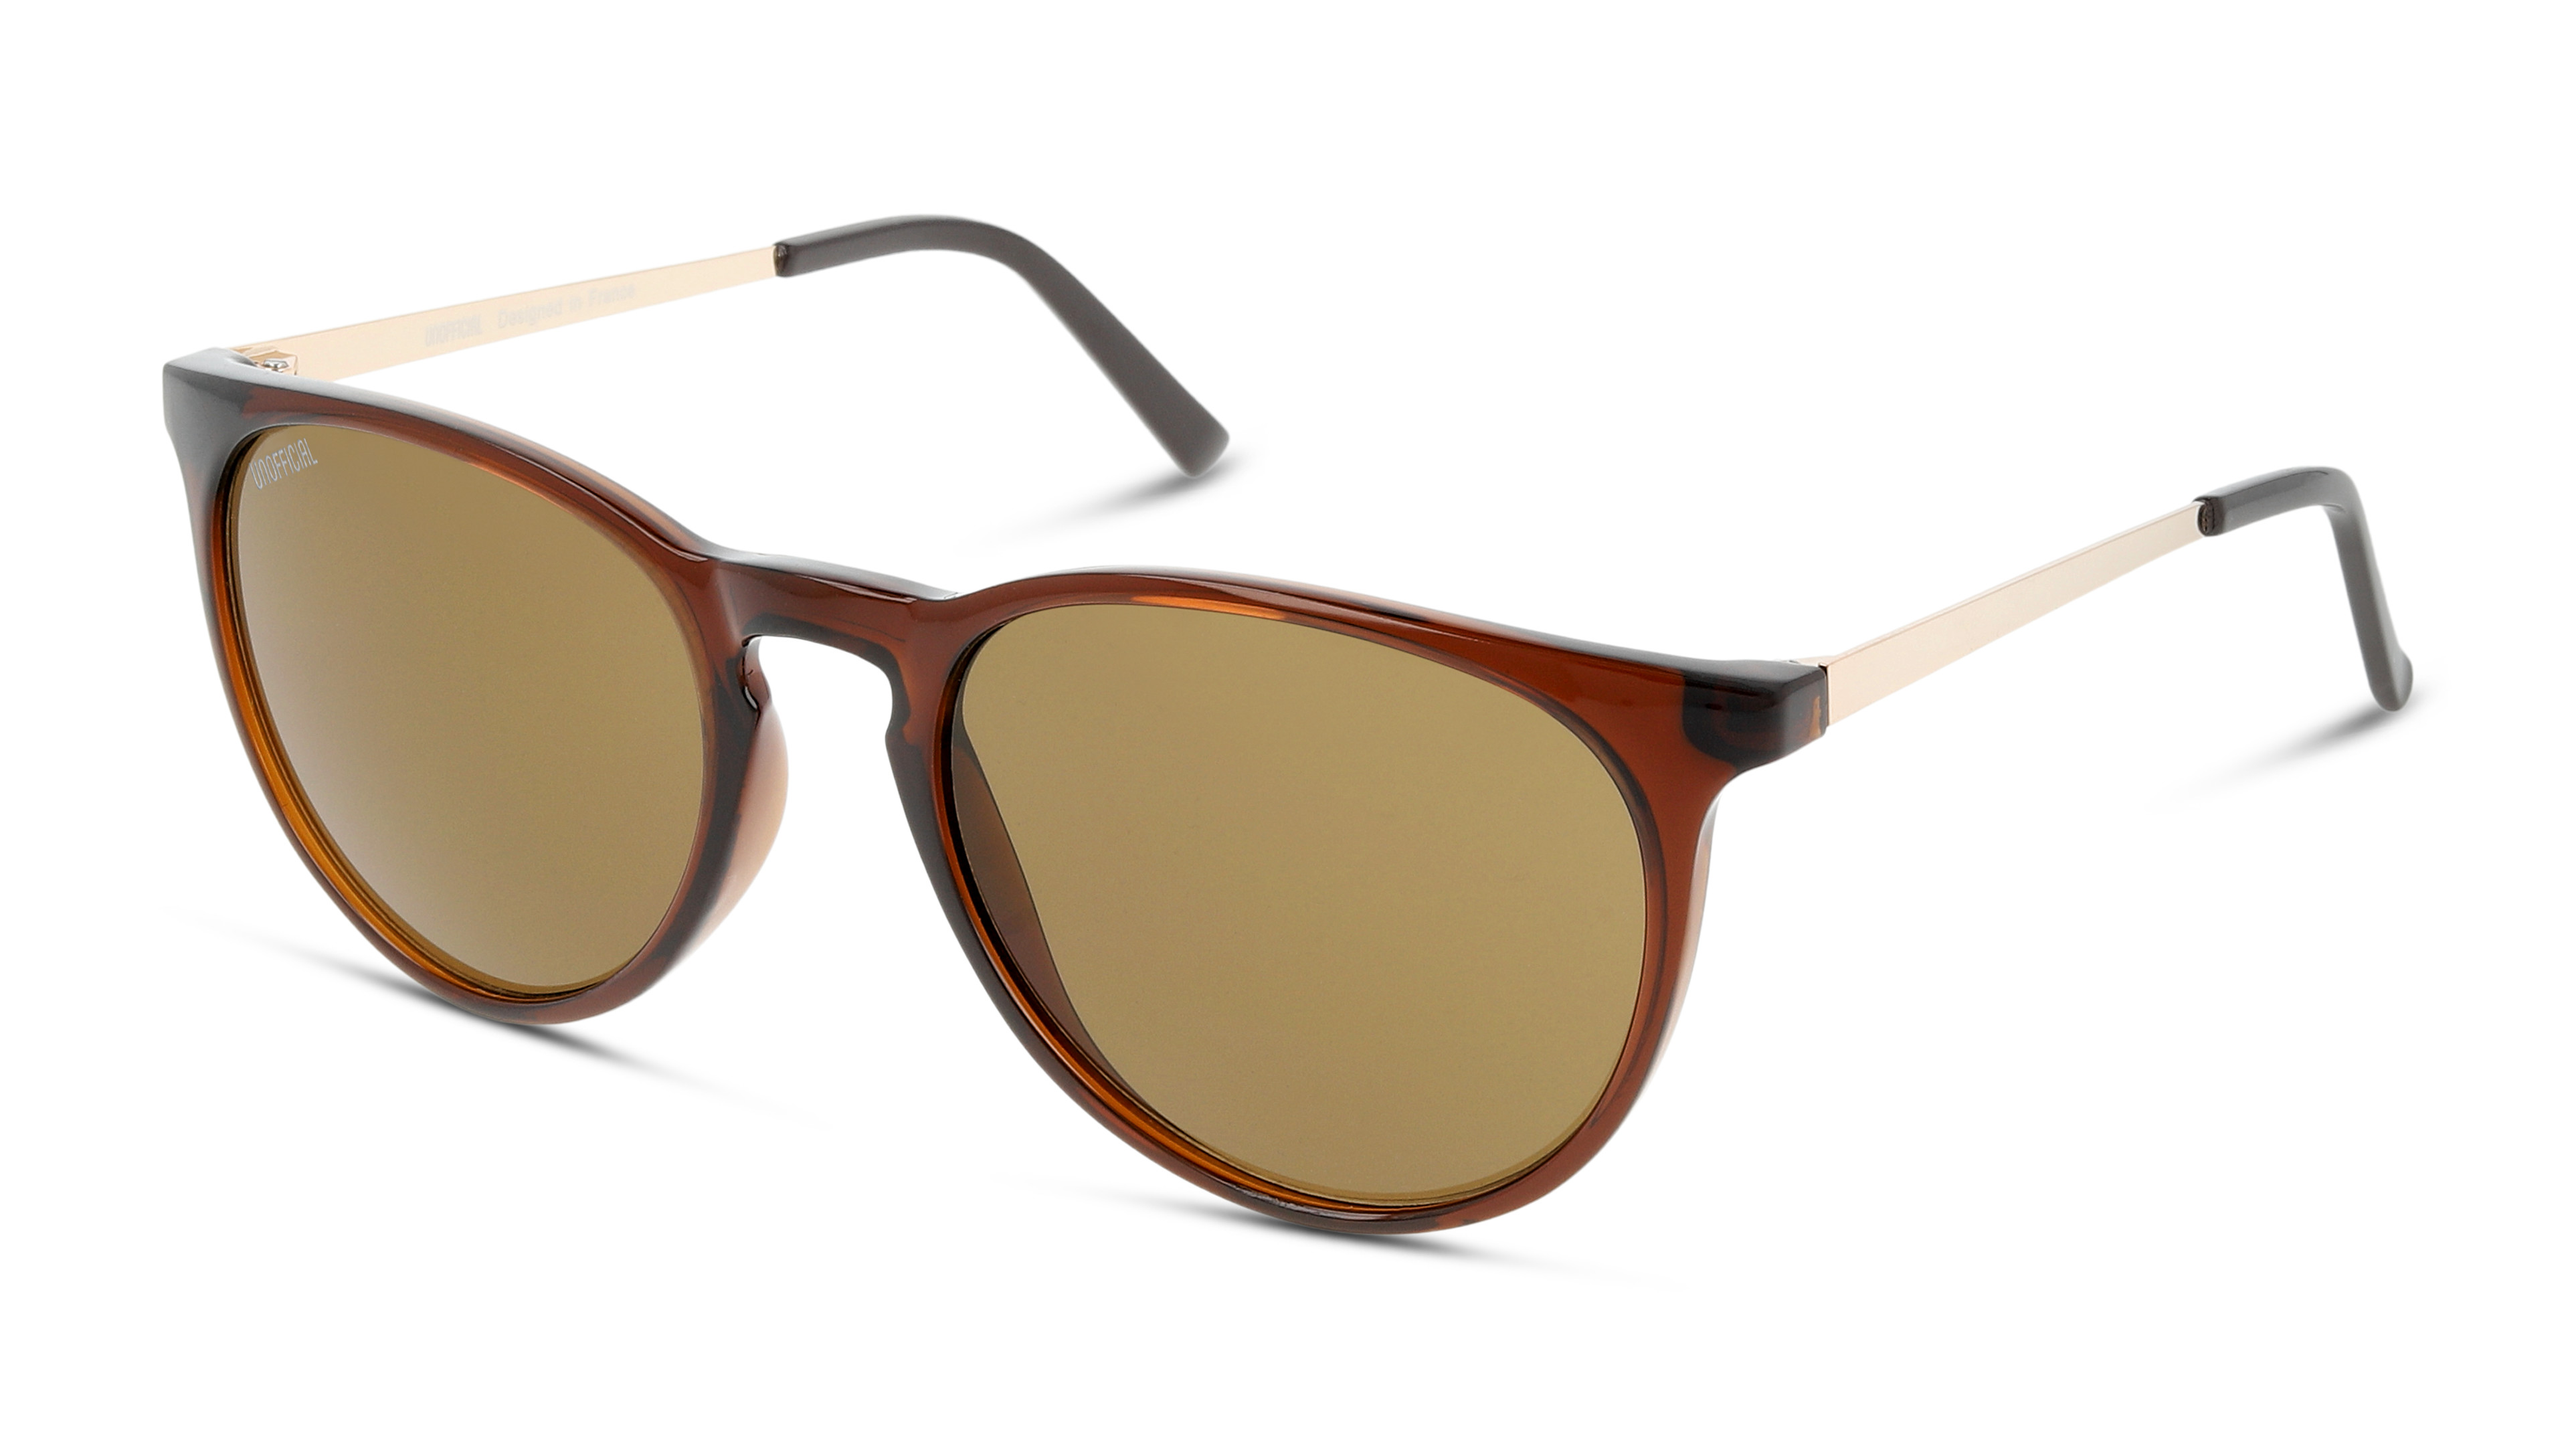 8719154732911-angle-03-unofficial-unsf0089-eyewear-brown-gold